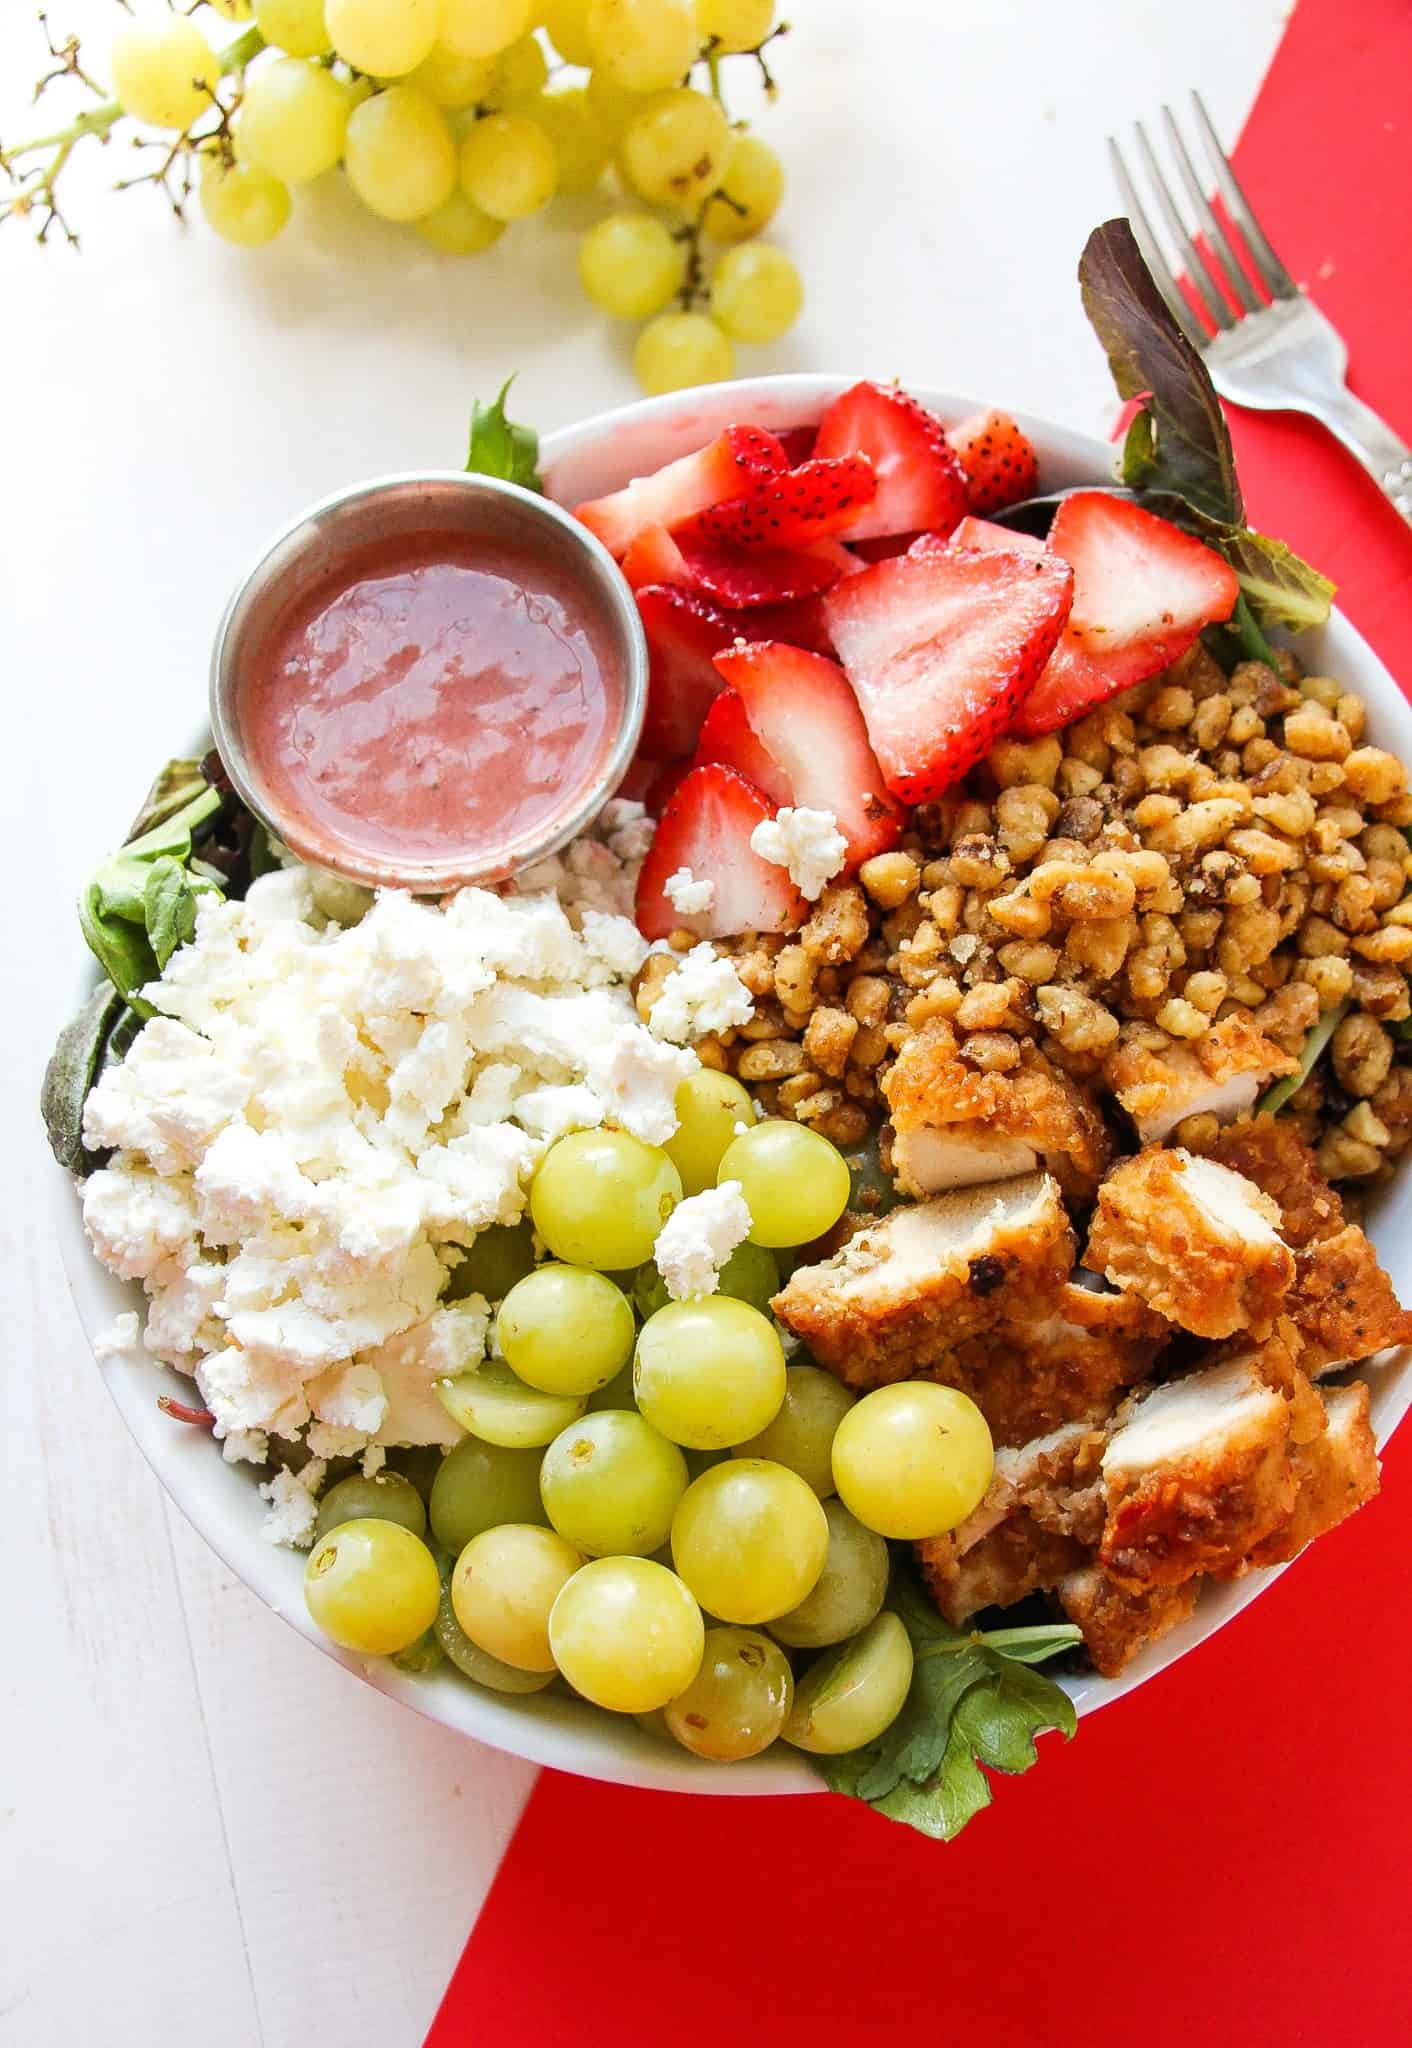 Creamy Strawberry Balsamic Dressing and CANDIED walnuts, goat cheese ...